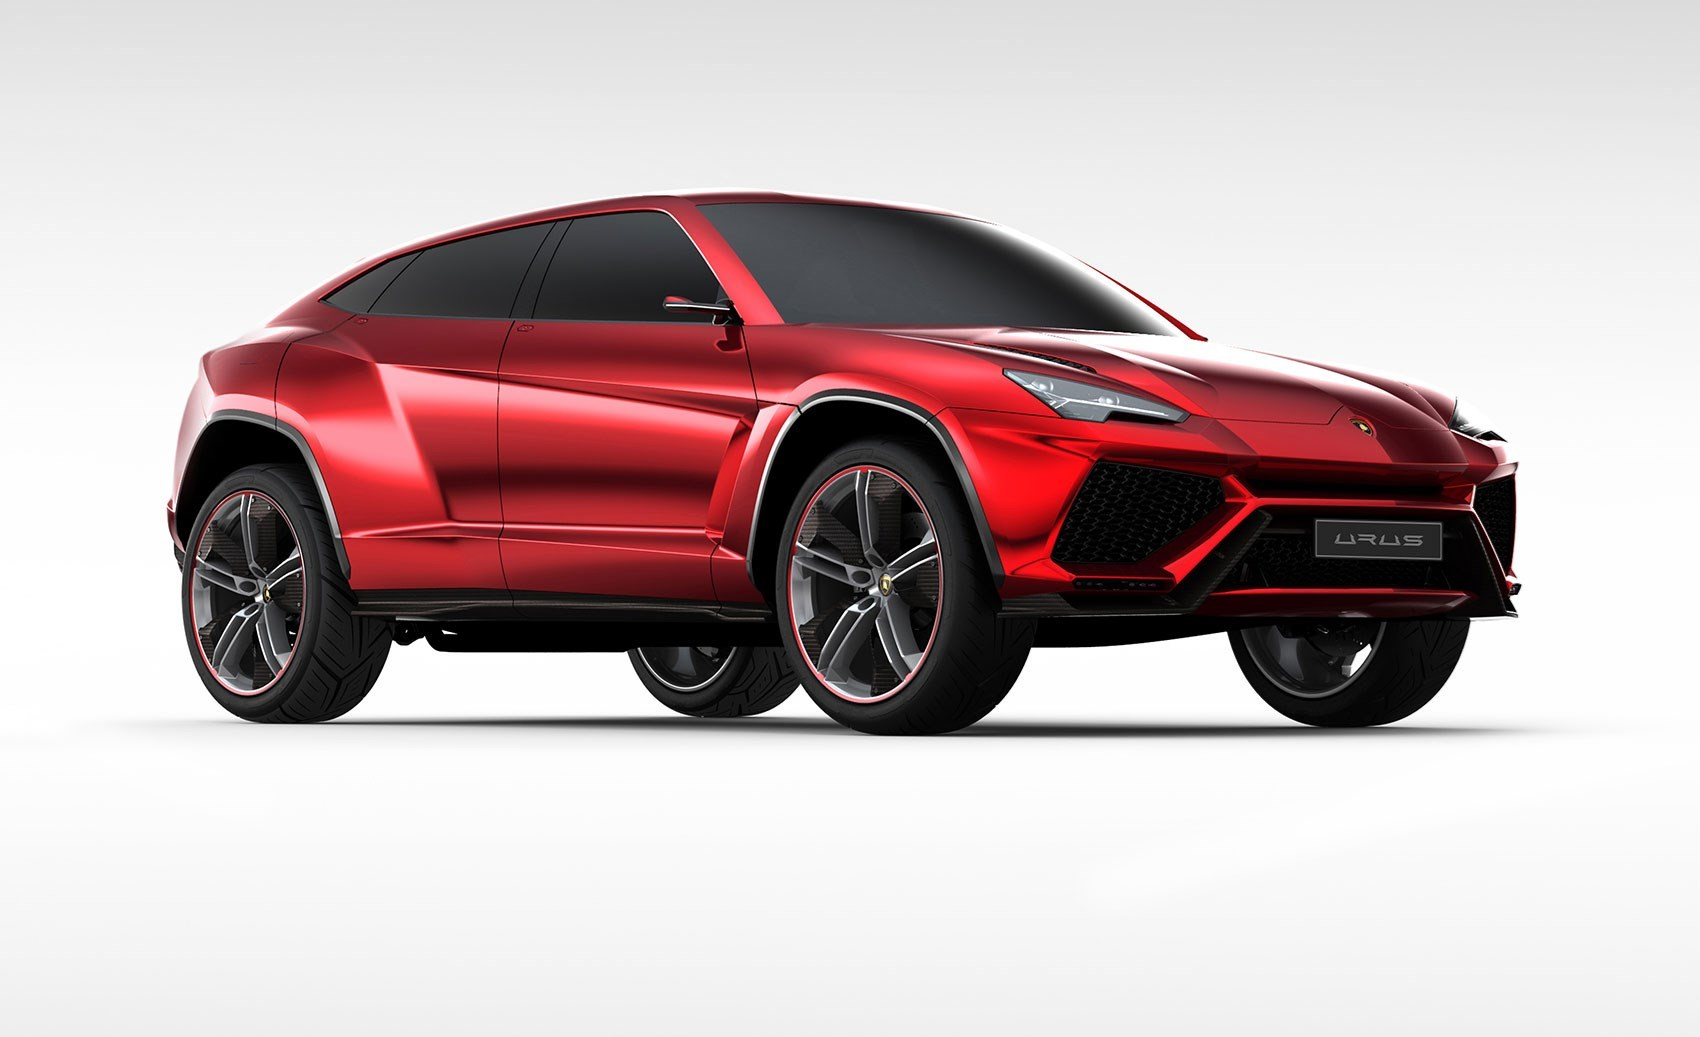 lamborghini car 2018. the original lamborghini urus concept car, revealed in 2012 car 2018 s